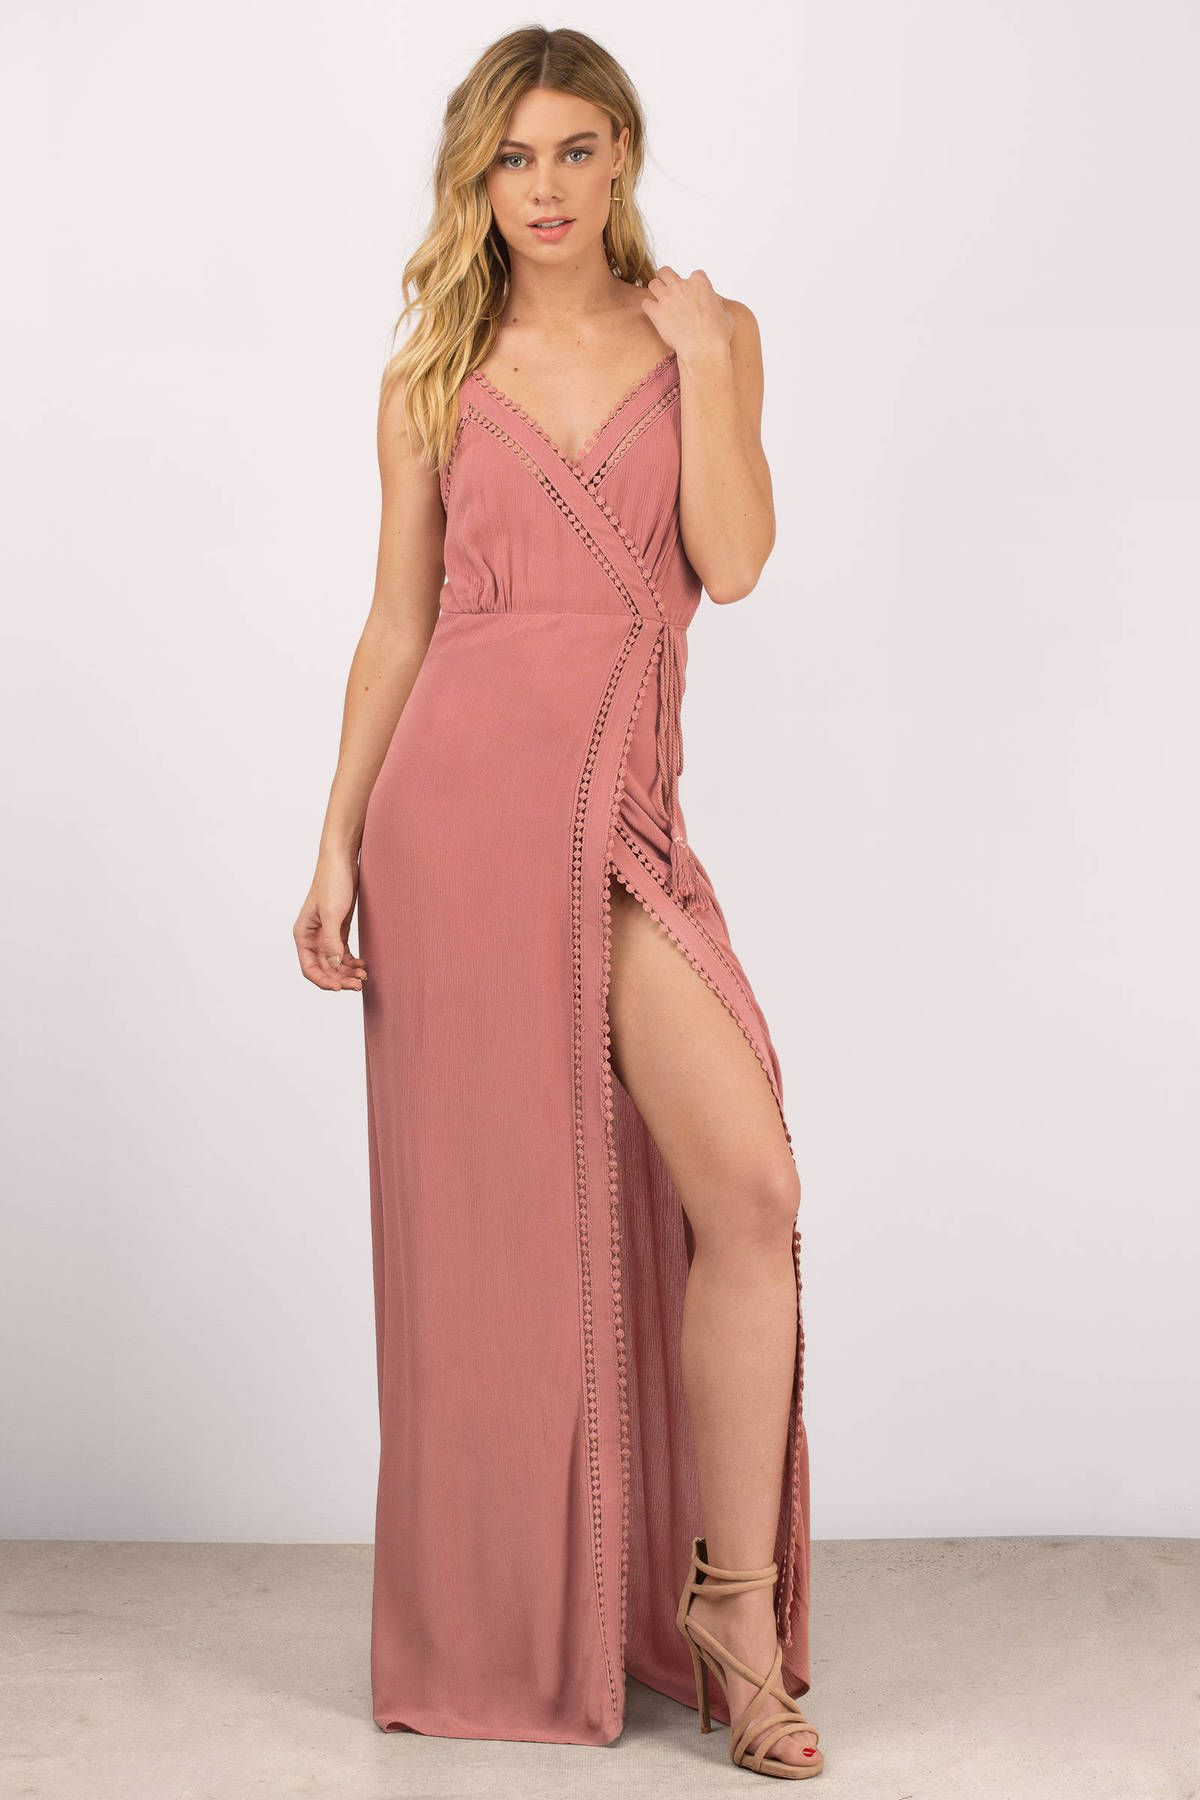 The mykonos cami strap surplice maxi dress is a must have perfect